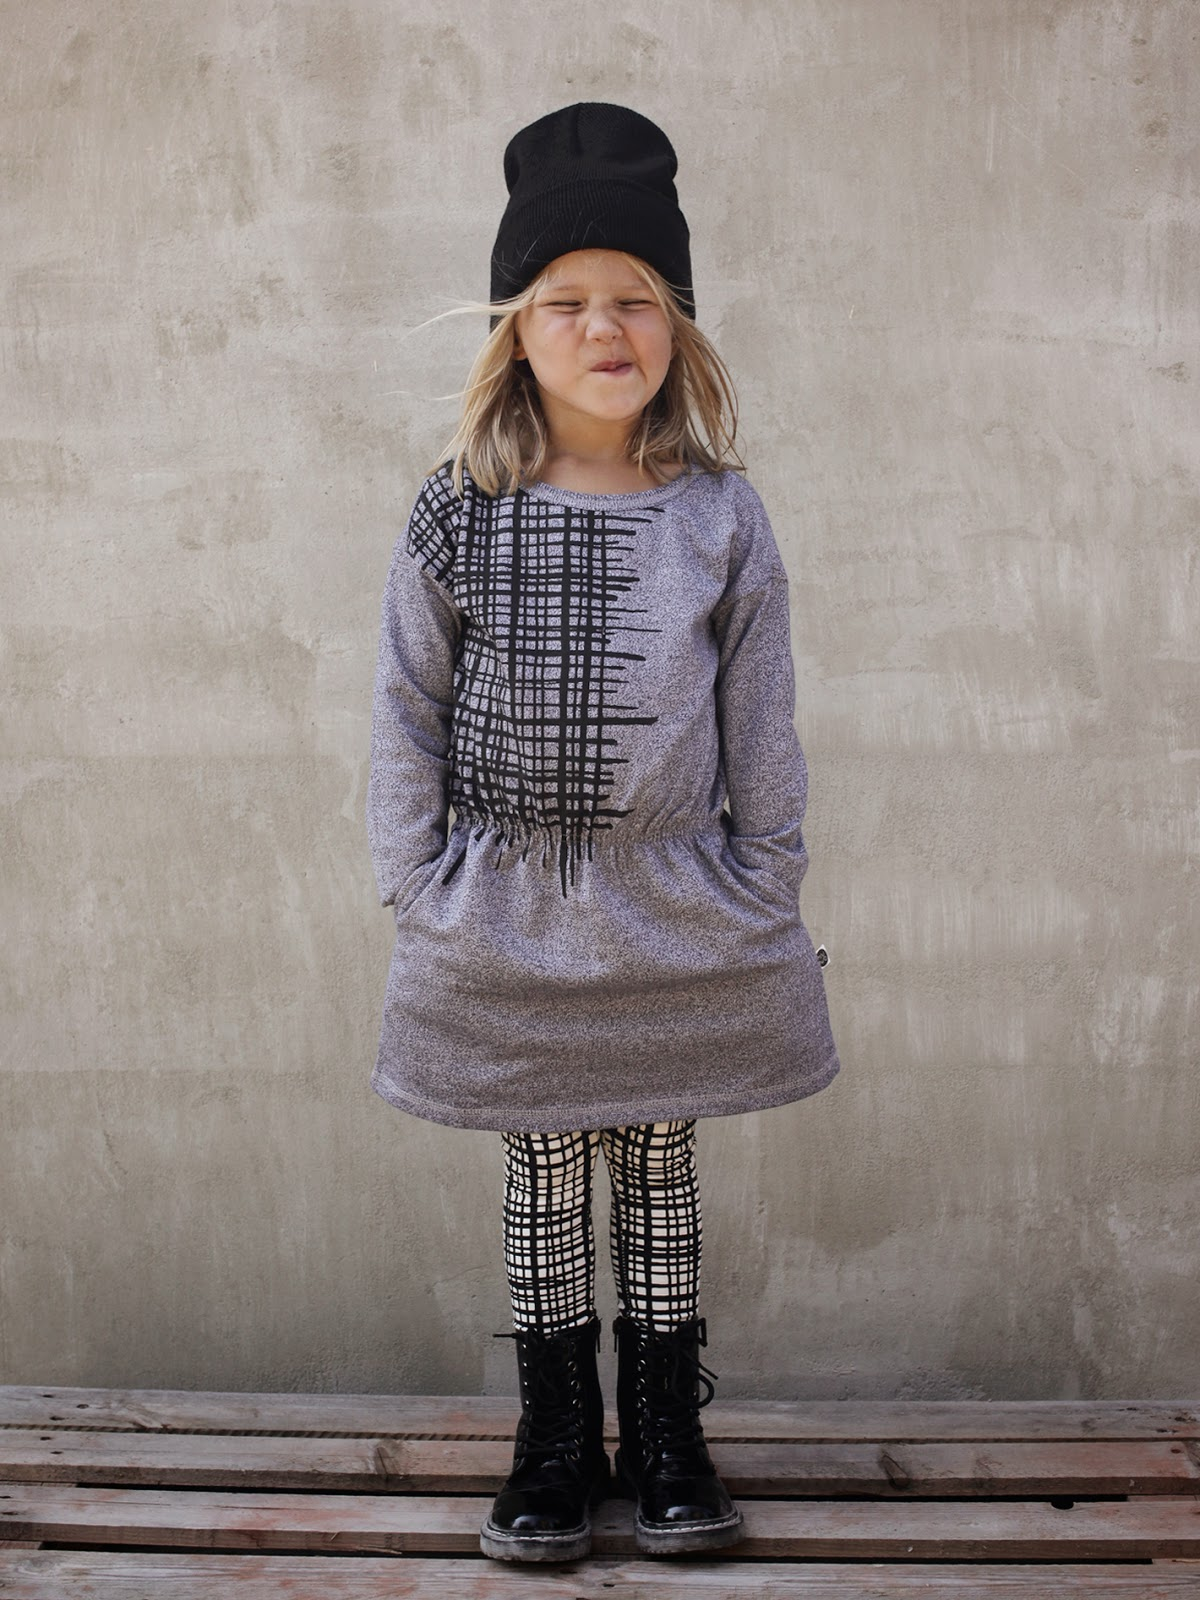 Girls' monochrome look by Mainio Clothing for autumn 2014 collection